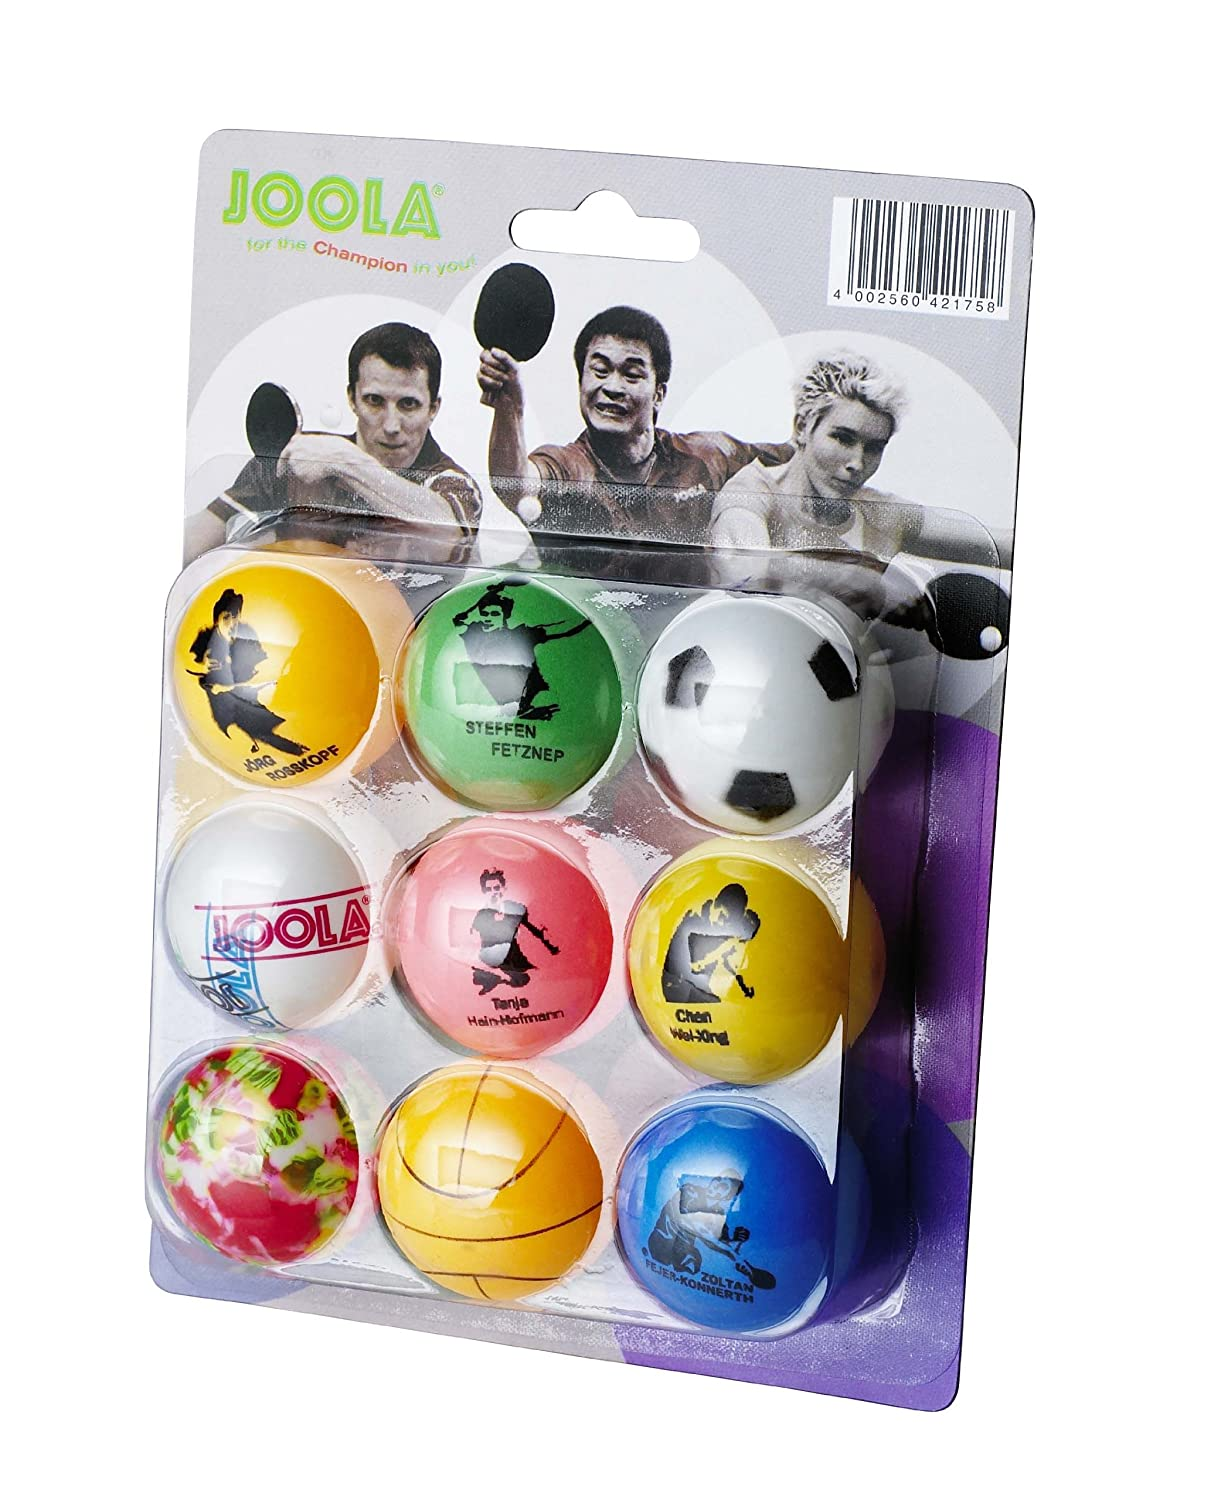 Joola Fan Table Tennis Balls - Multi-Colour